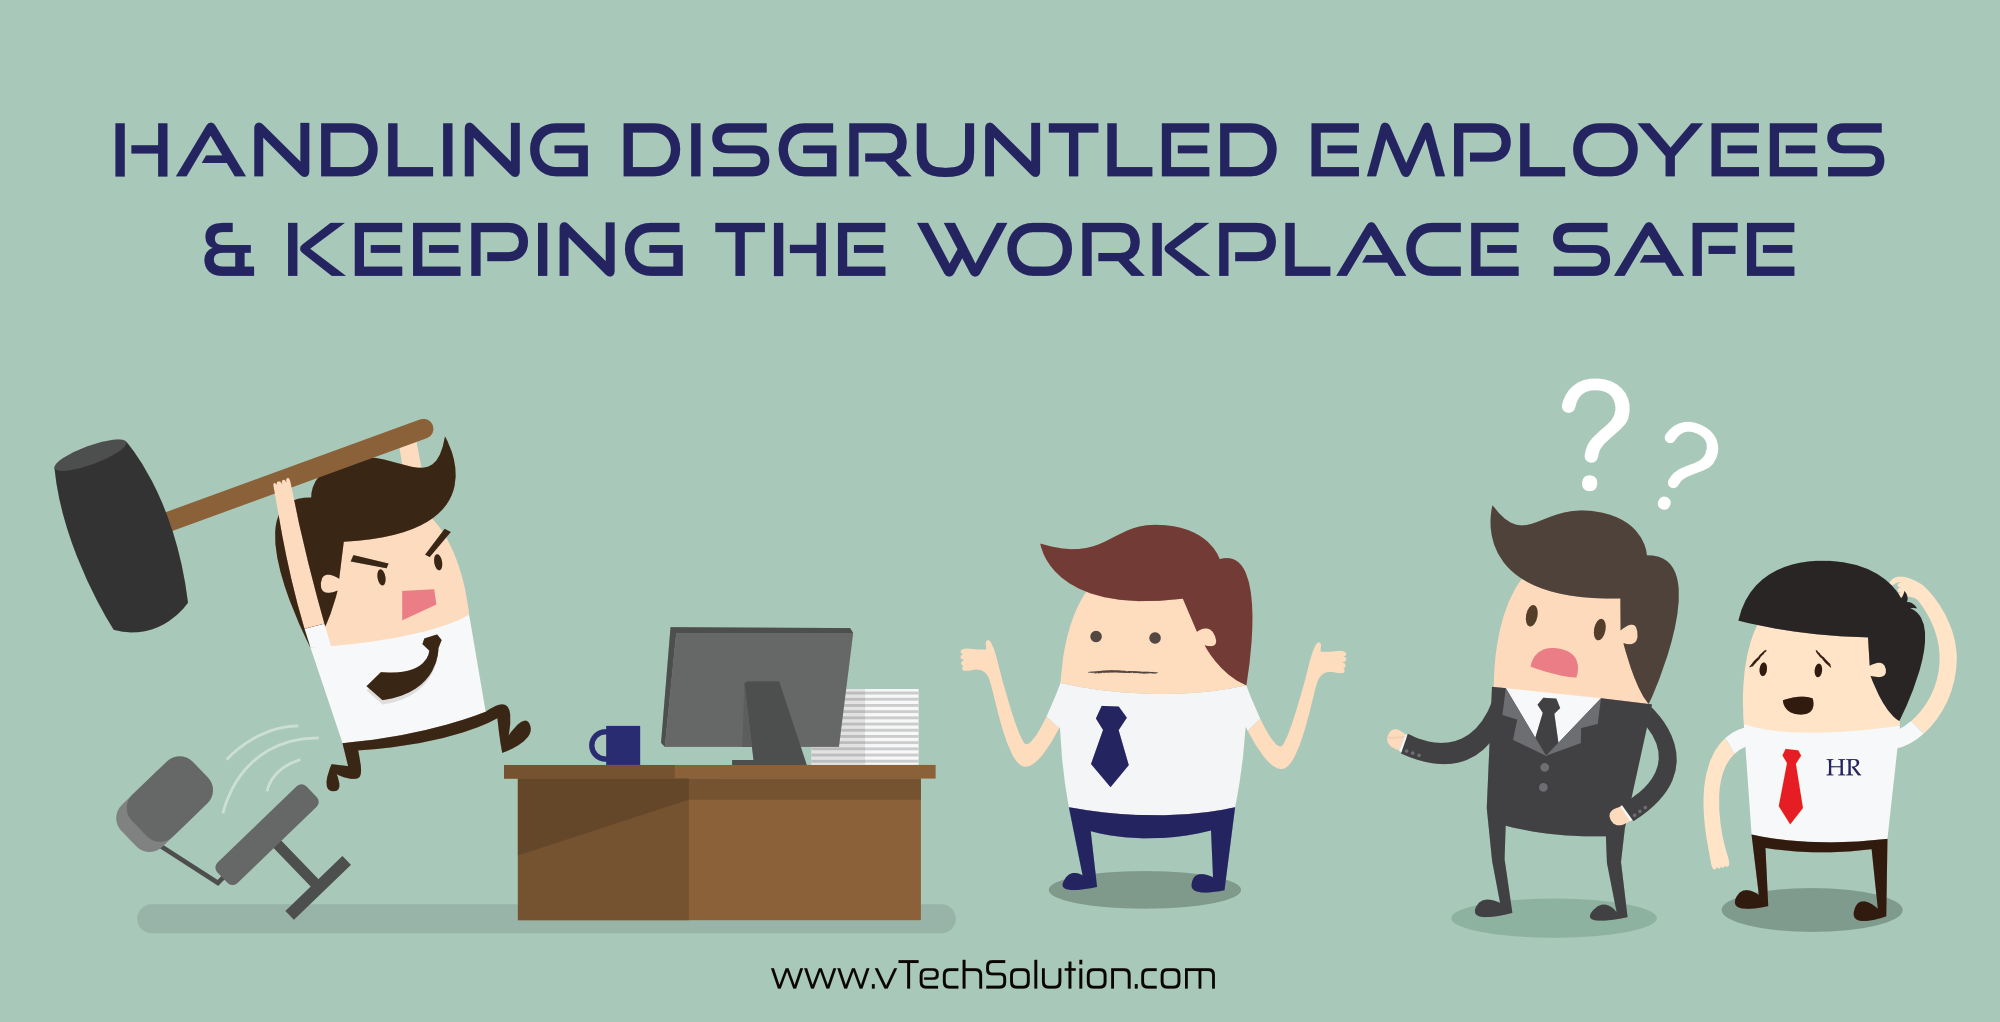 HANDLING-DISGRUNTLED-EMPLOYEES-AND-KEEPI